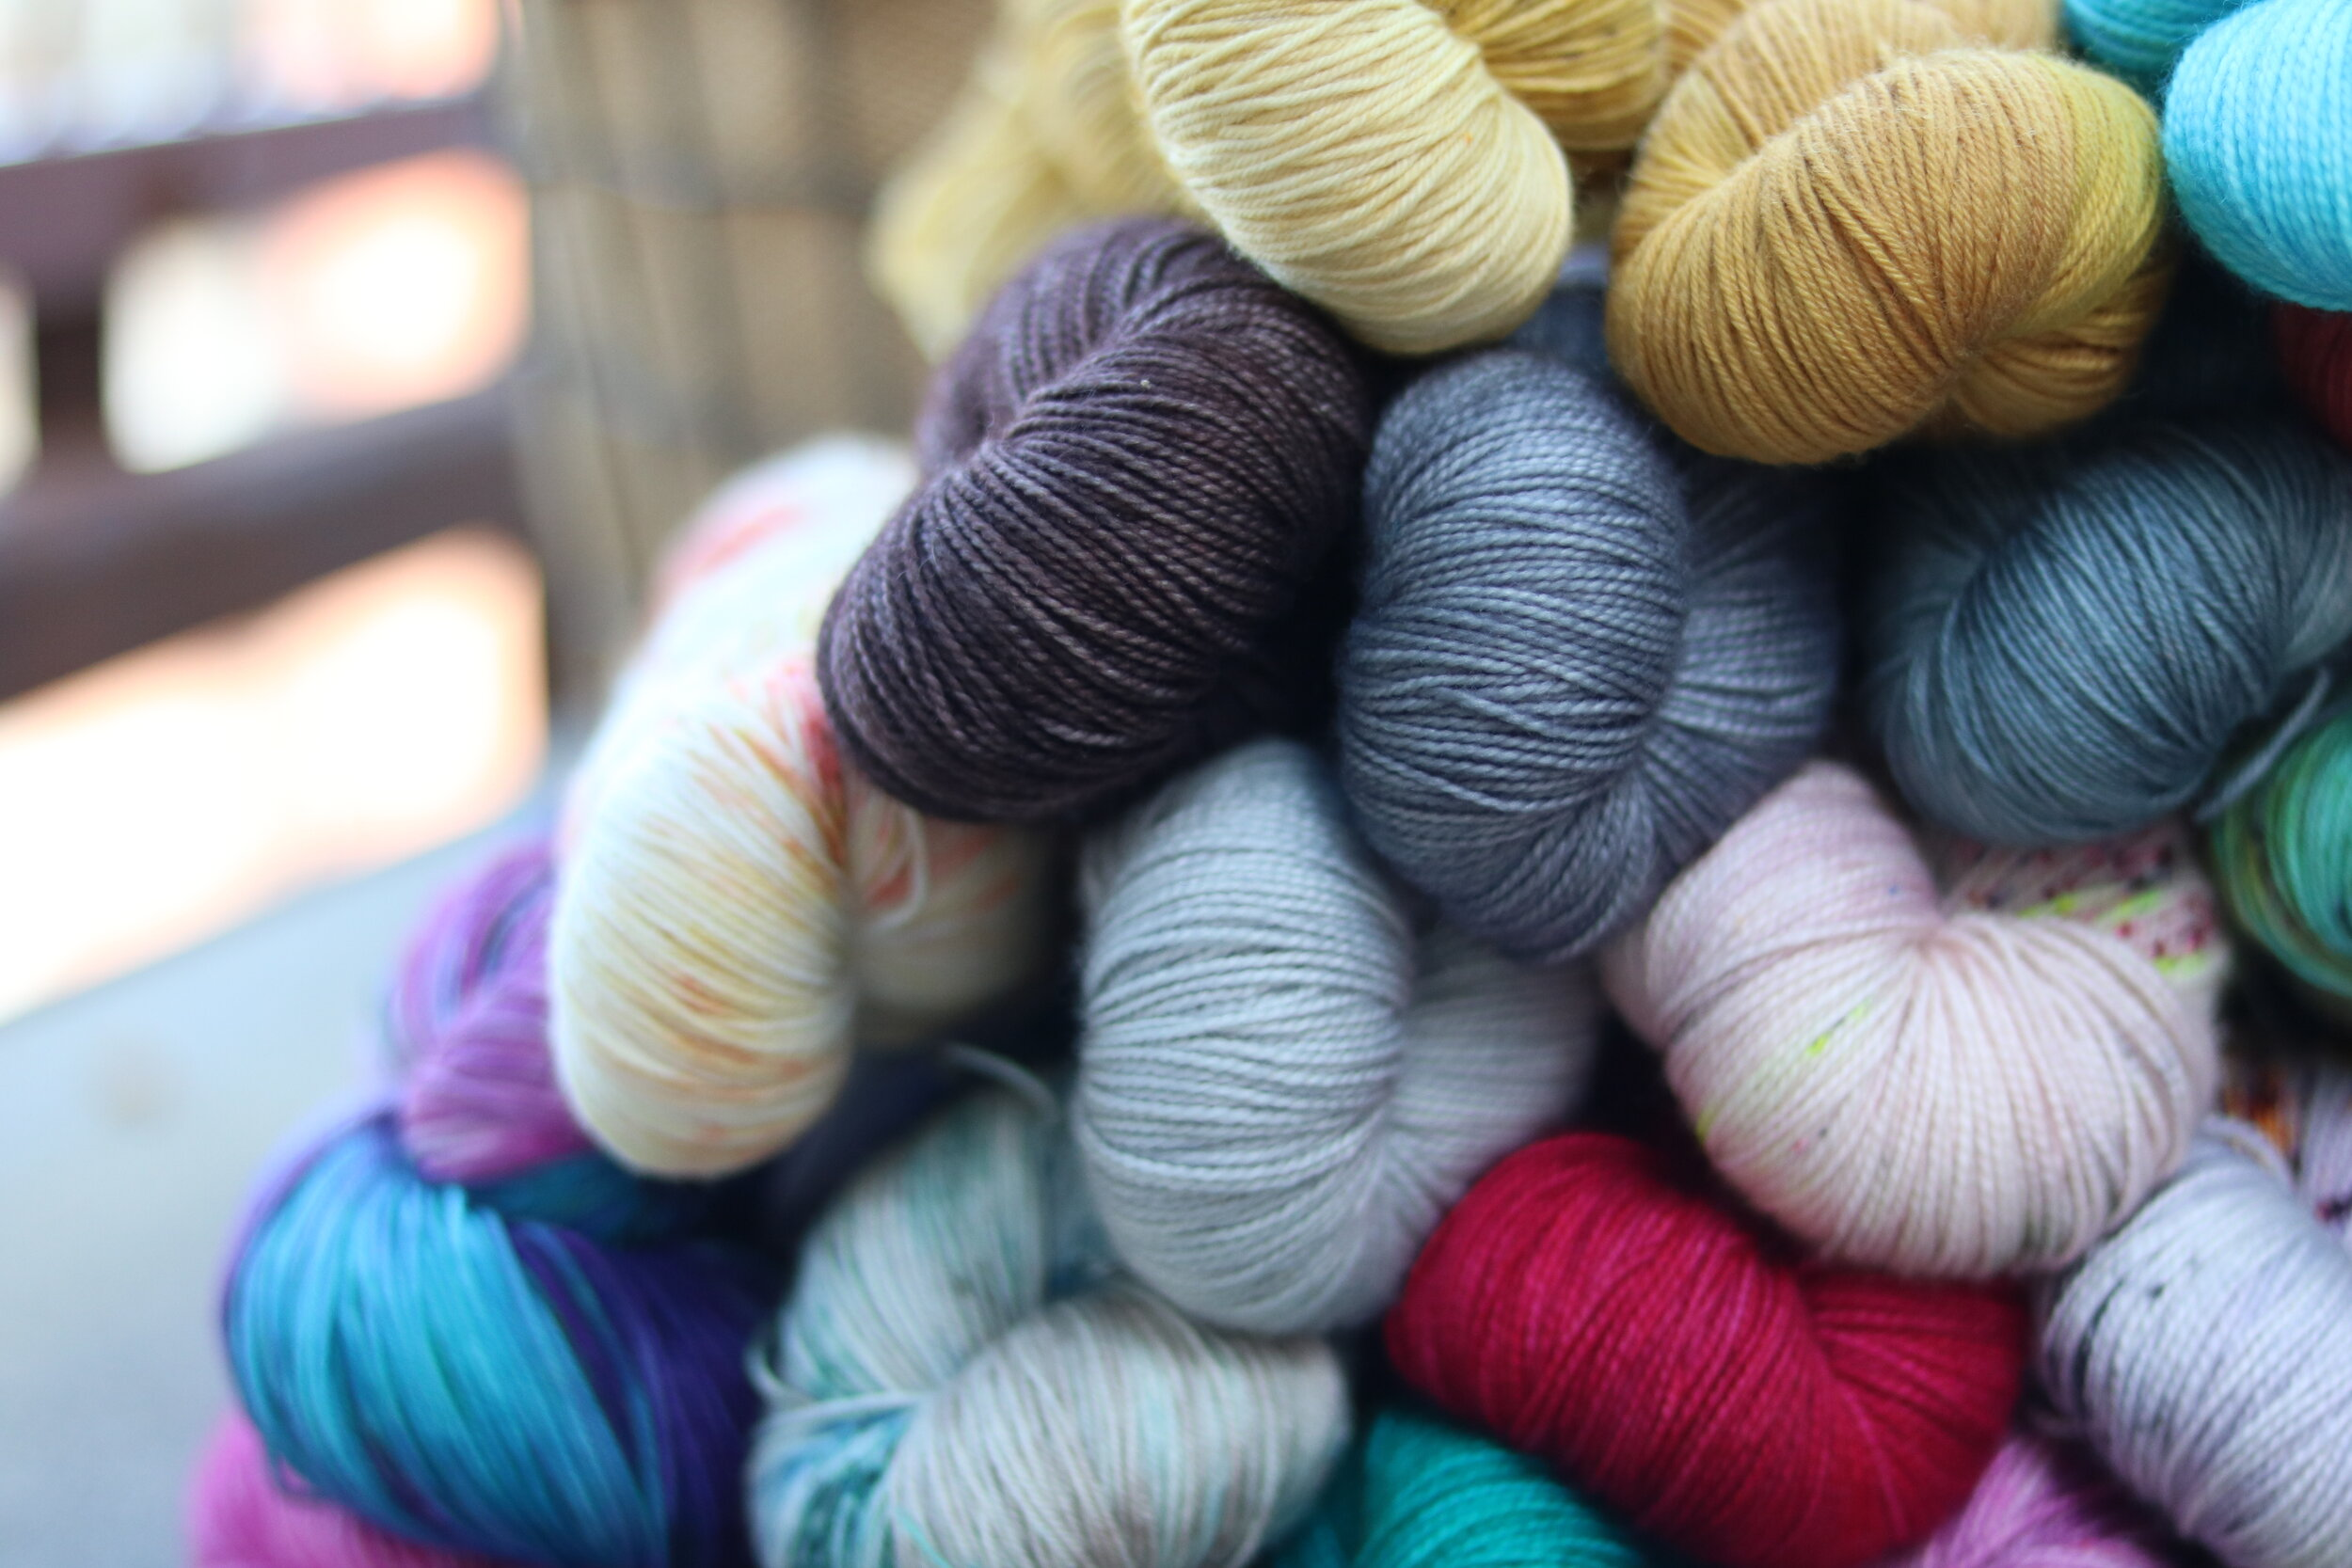 A time and place where makers come together. We work on current projects and engage in meaningful conversation about our passion for knitting and crocheting. -